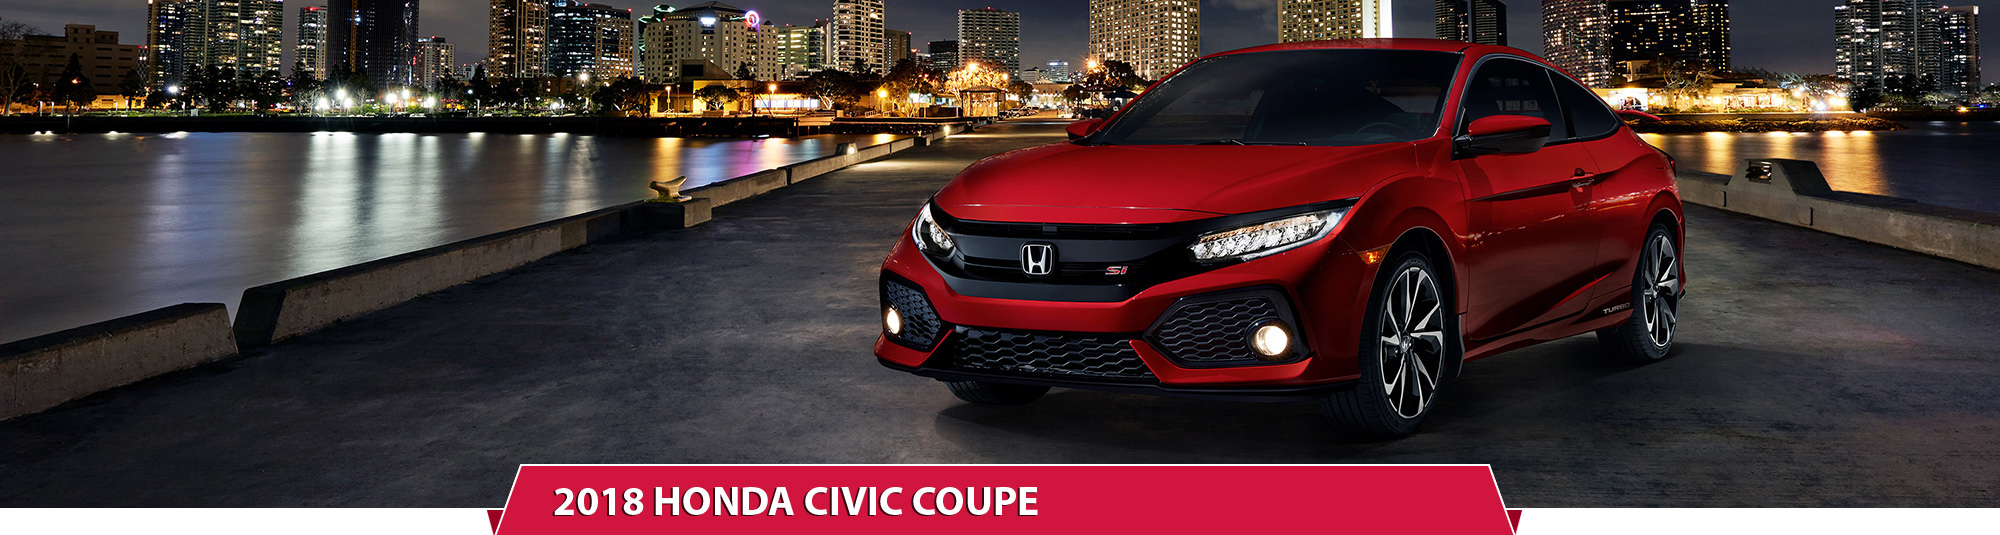 All The New 2018 Honda Civic Coupe